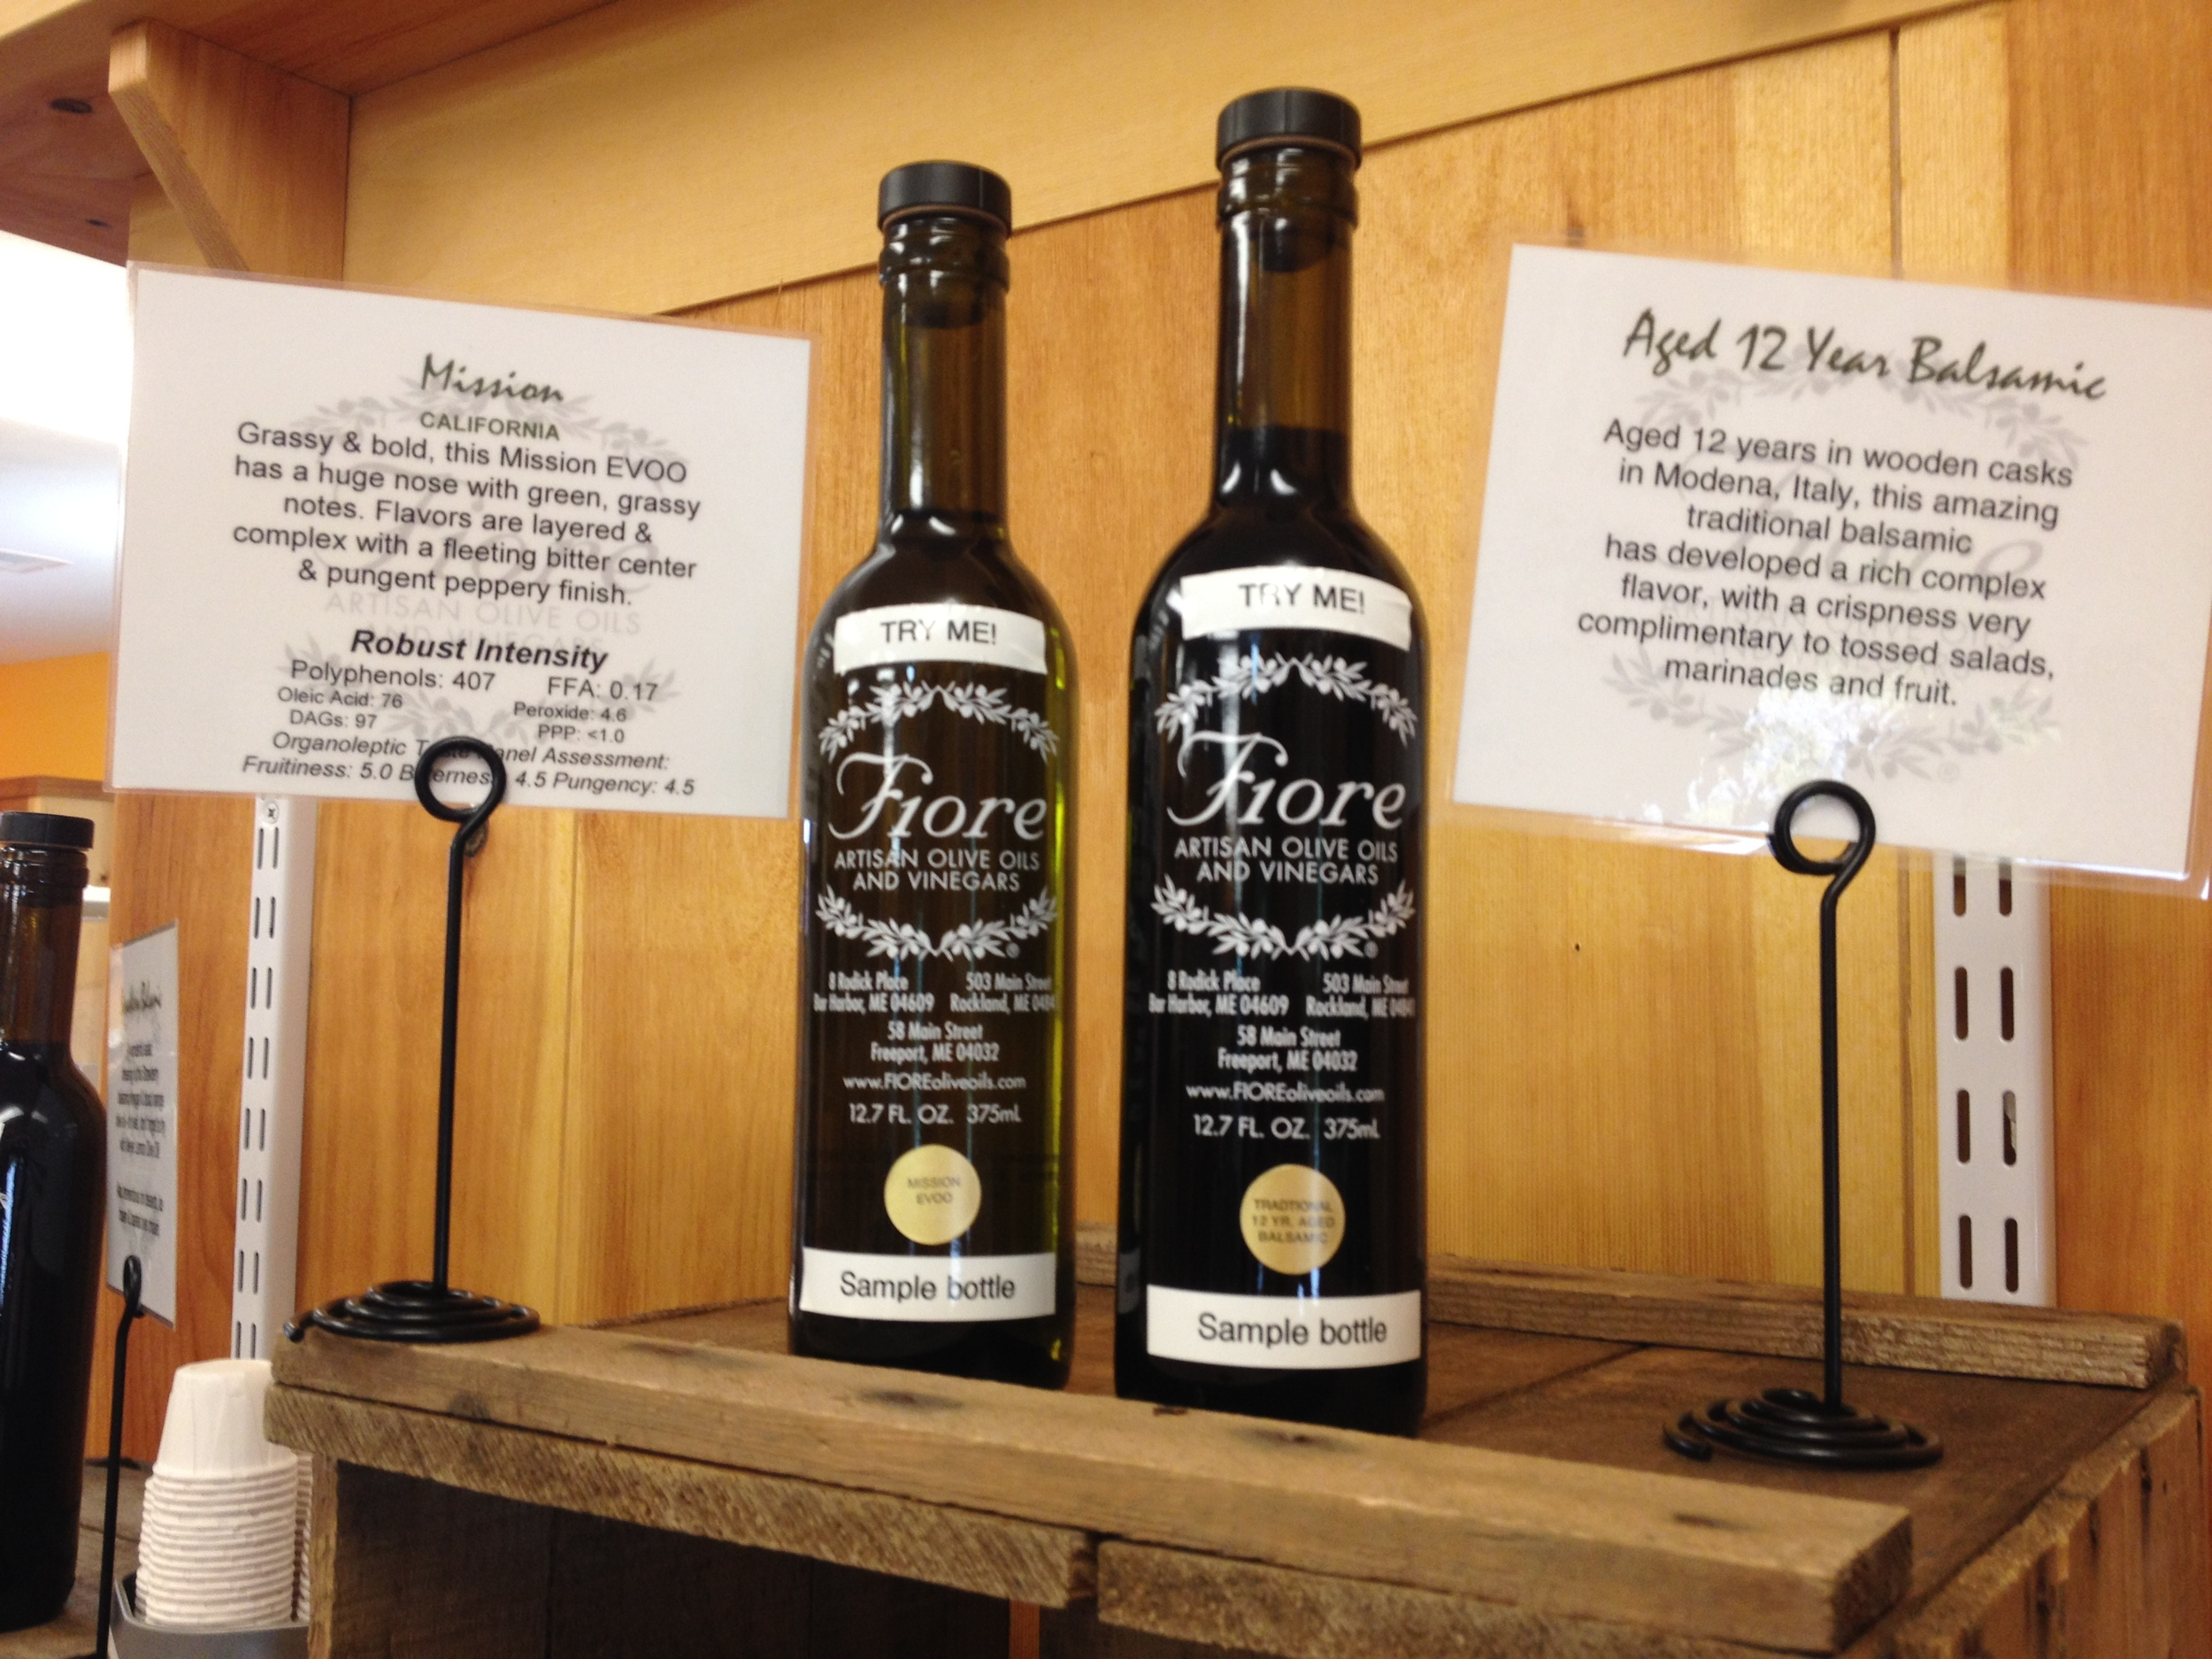 Sample Bottles Of Fiore EVVO & Vinegar